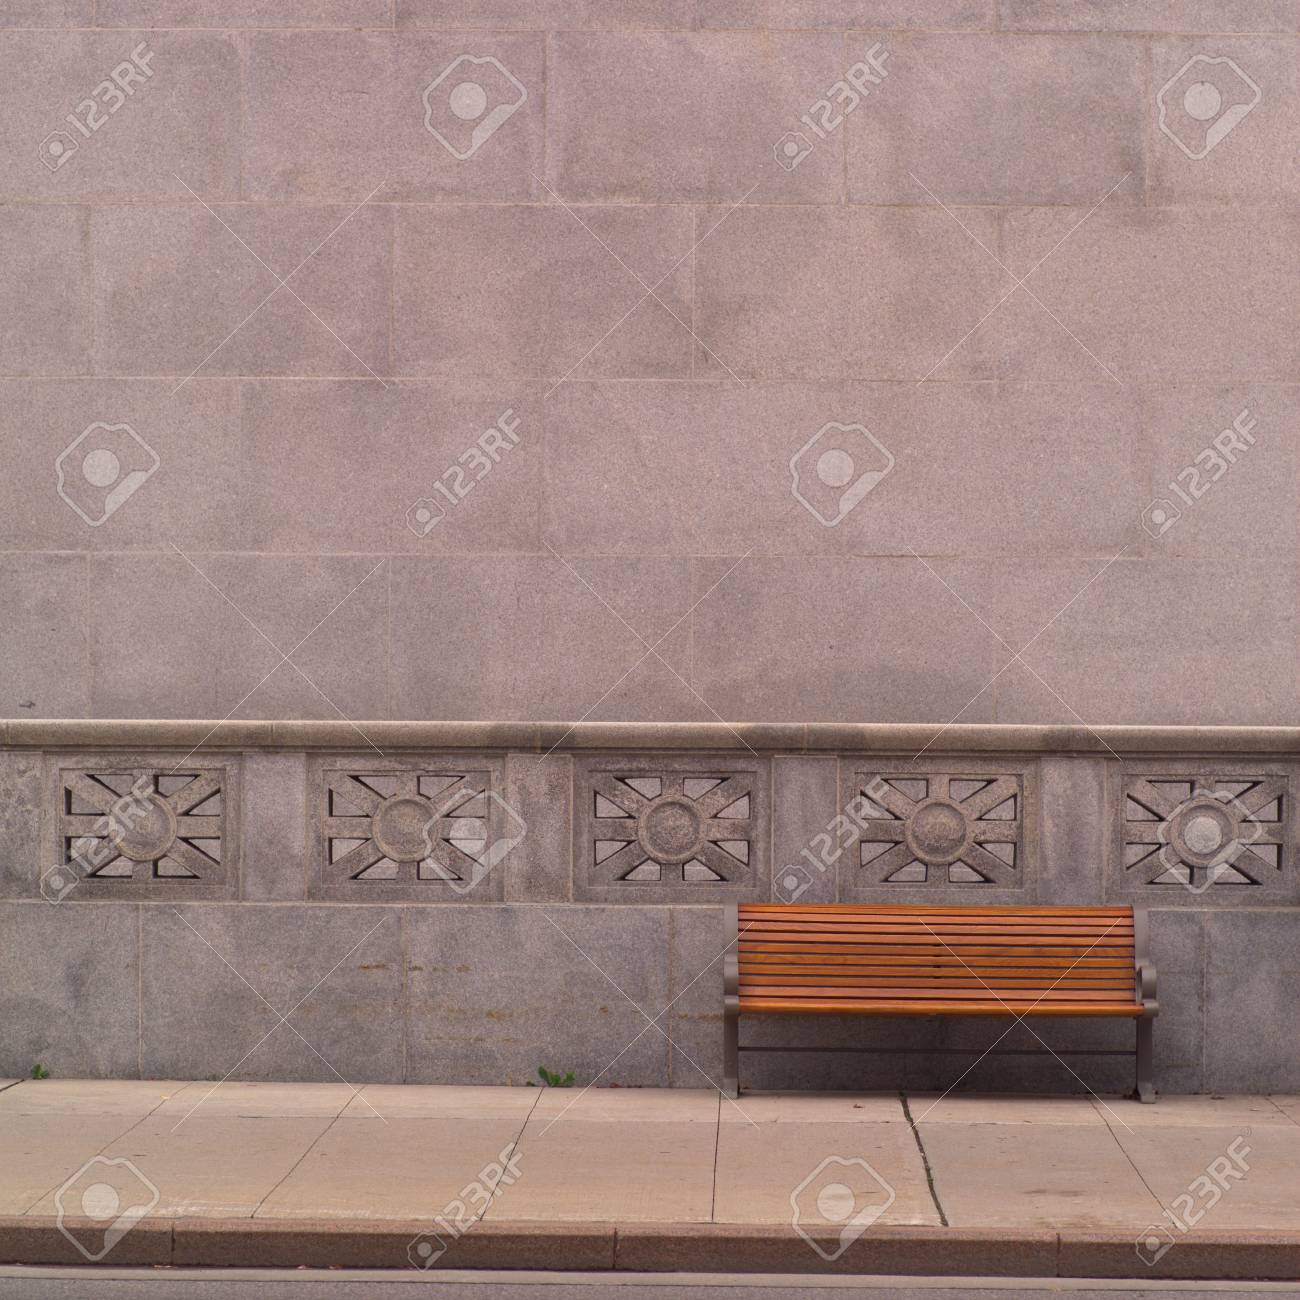 Ottawa Ontario Canada Empty Bench Outside Building Stock Photo